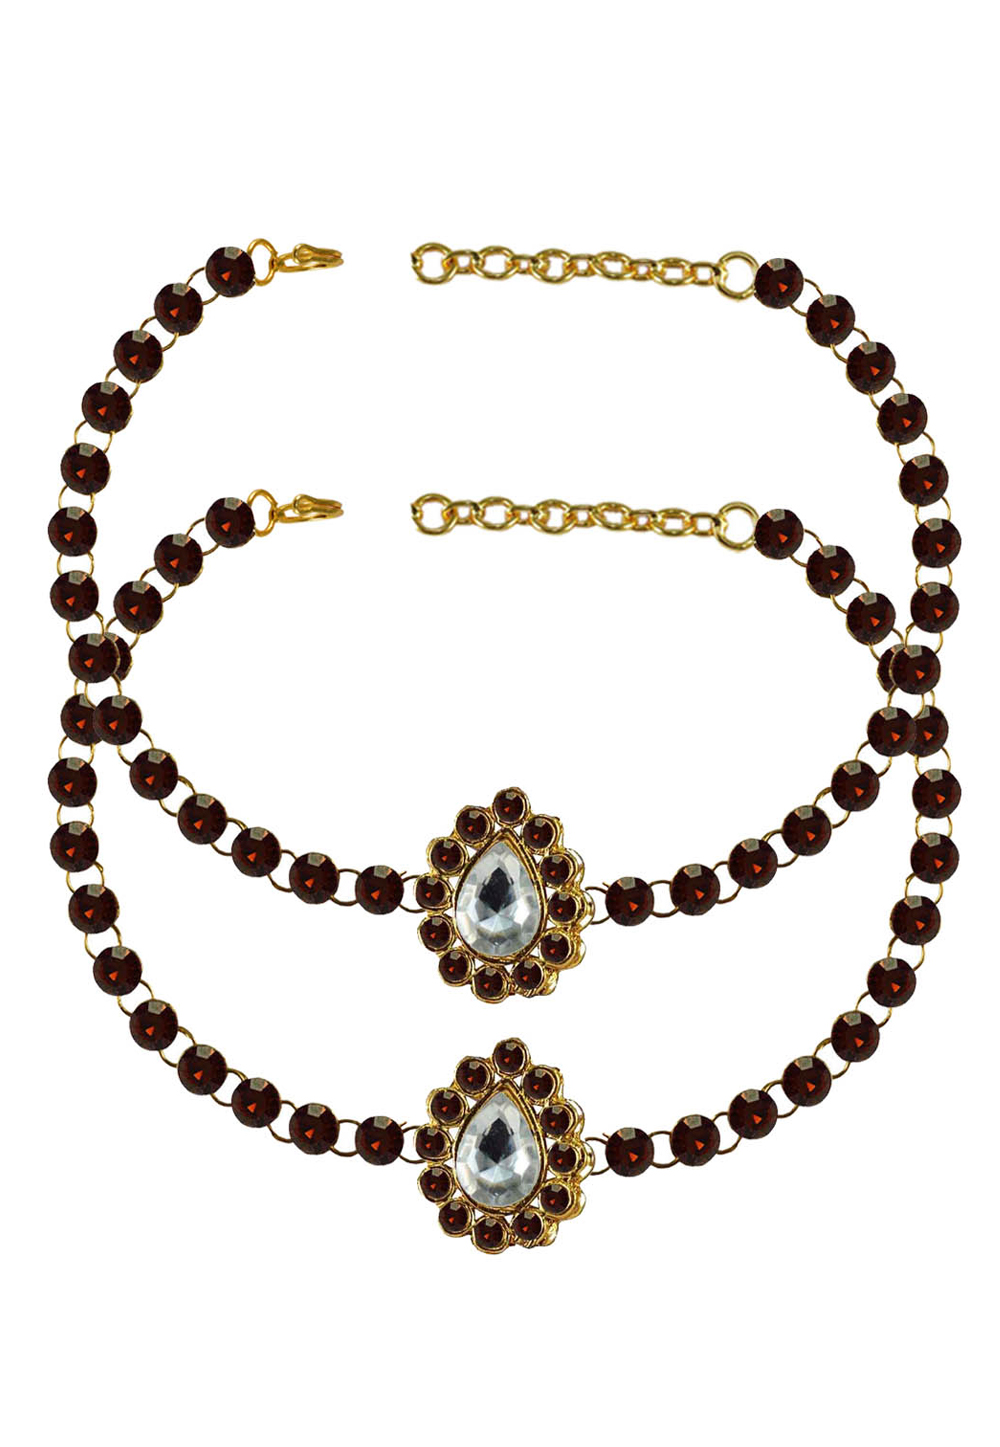 Maroon Brass Gold Plated Anklets 171317